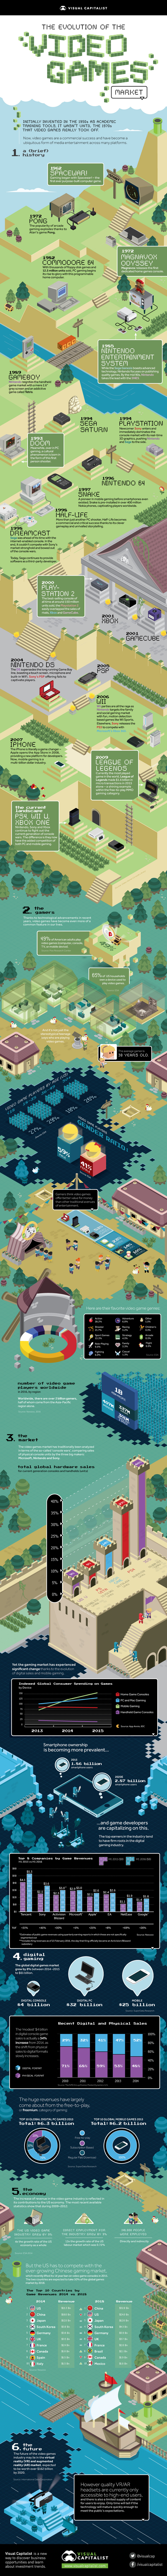 Infographic The History And Evolution Of The Video Games Market